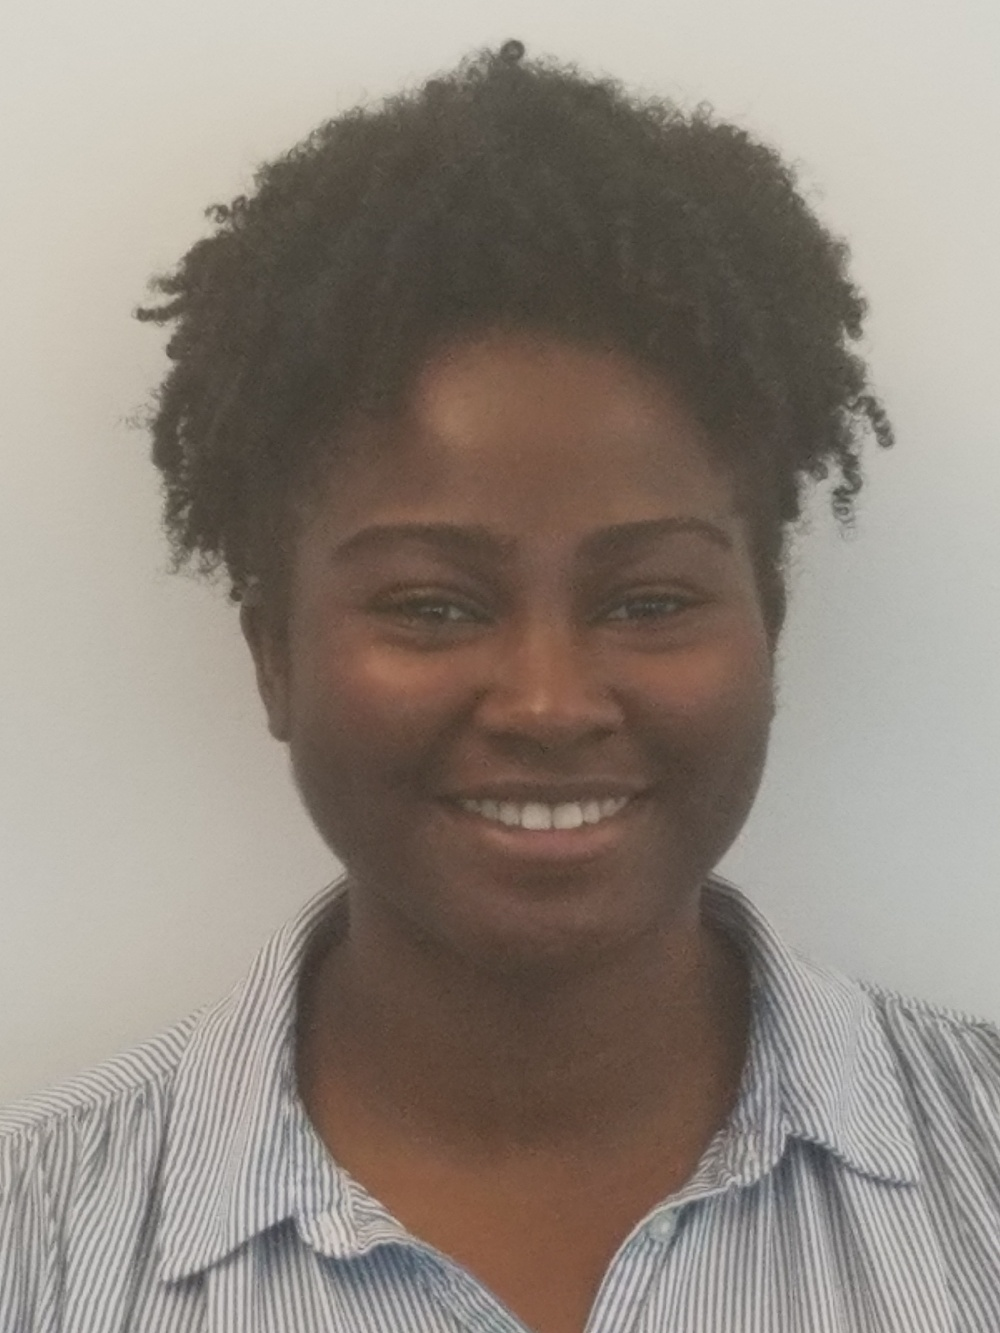 IDEALS Student Candice Forrester Wins CCNY Chemistry & Biochemistry Department Jerome Karle Award